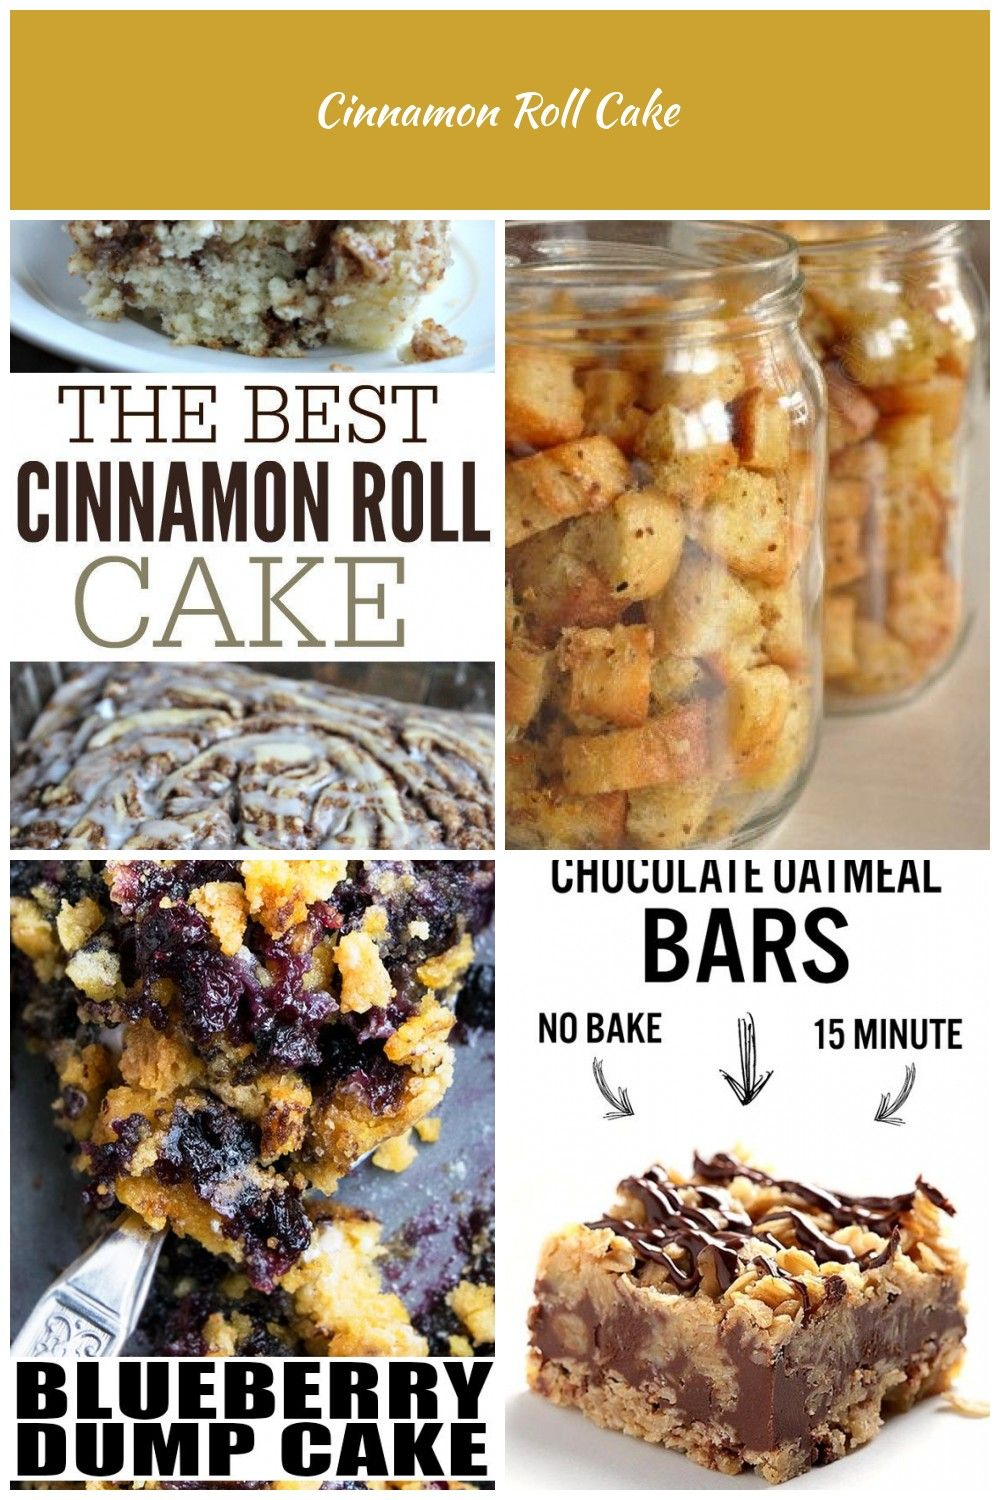 Here is a fun twist on a coffee cake recipe. This easy cinnamon roll cake recipe is the best. Get the taste of homemade cinnamon rolls without all the work. (Mug Cake Without Milk) easy baking Cinnamon Roll Cake #cinnamonrollpokecake